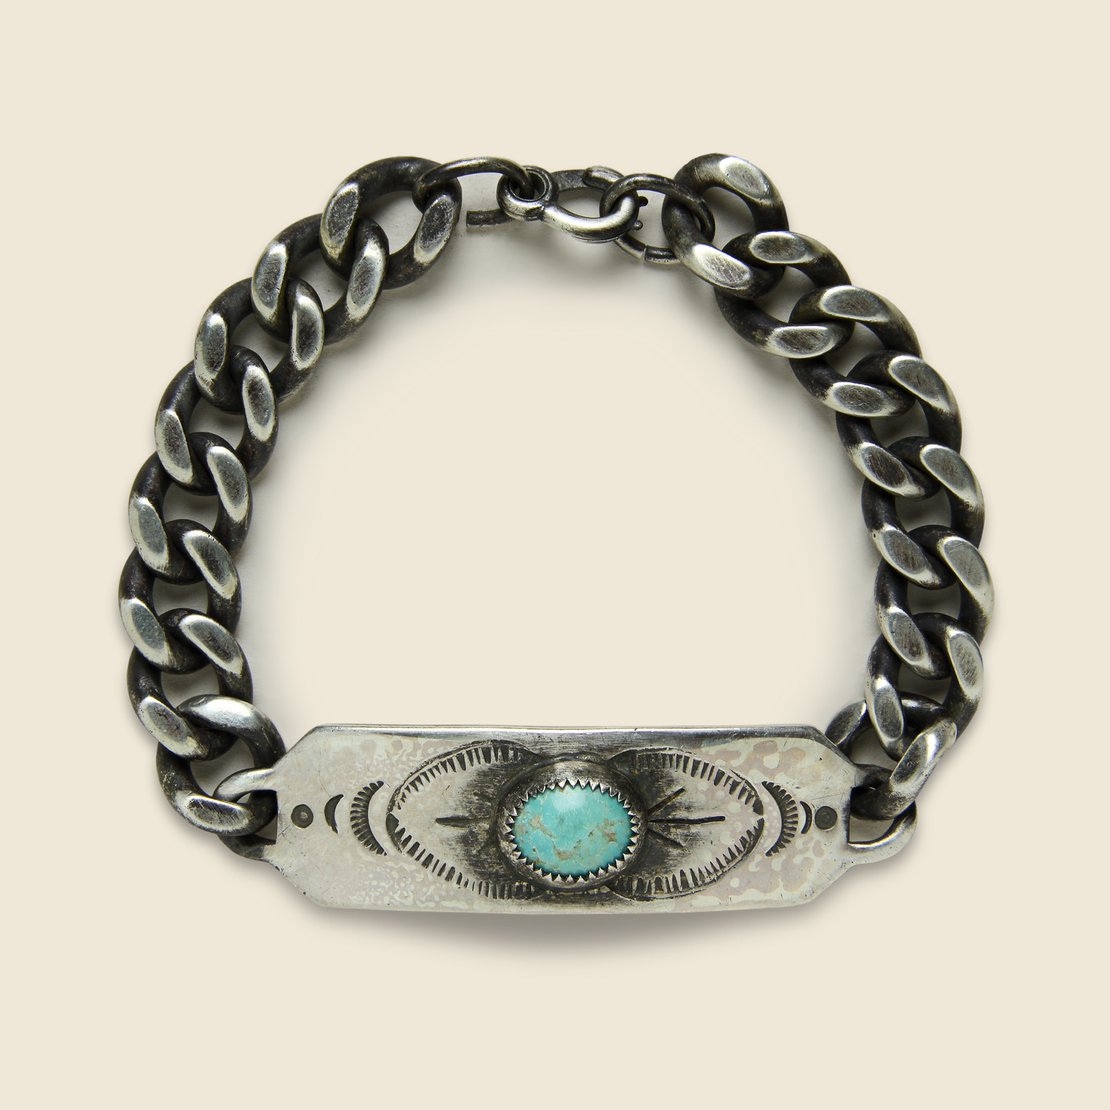 Signature Bracelet - Sterling Silver/Turquoise